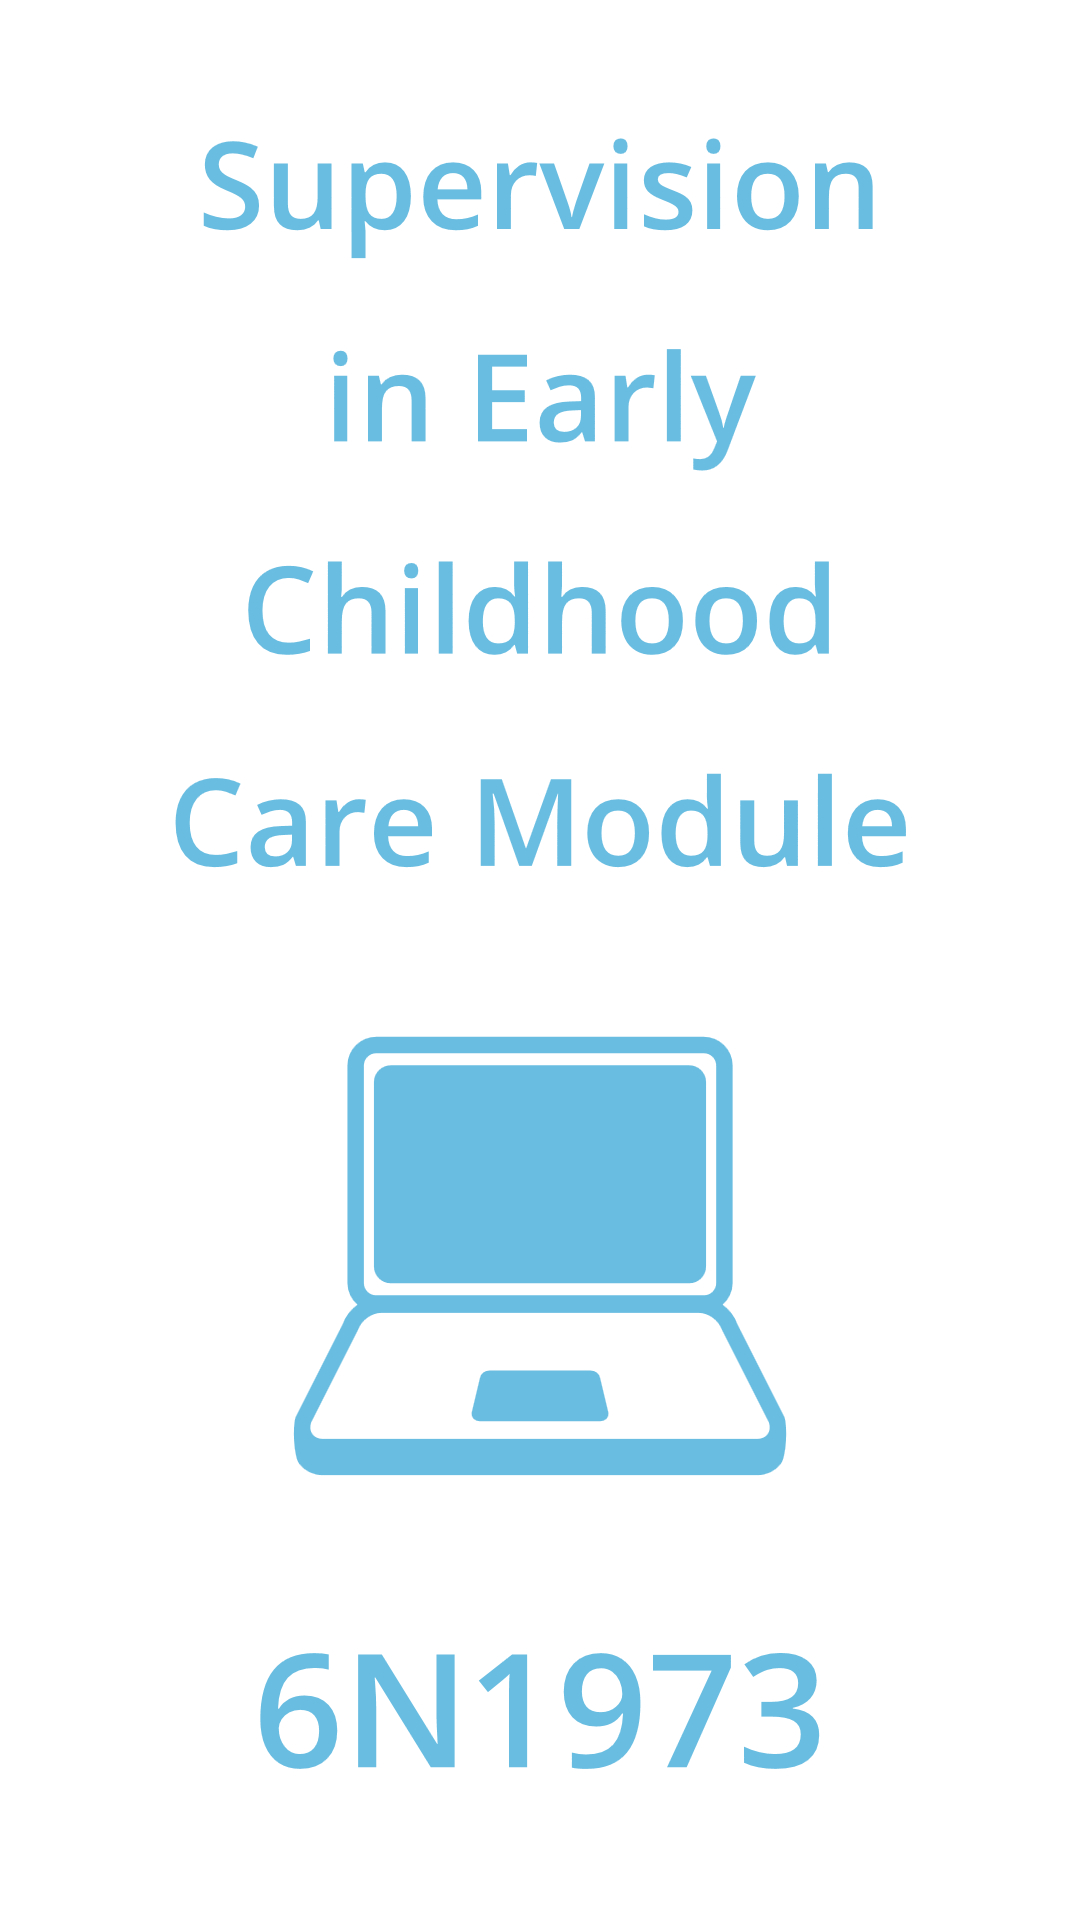 Supervision in Early Childhood Care